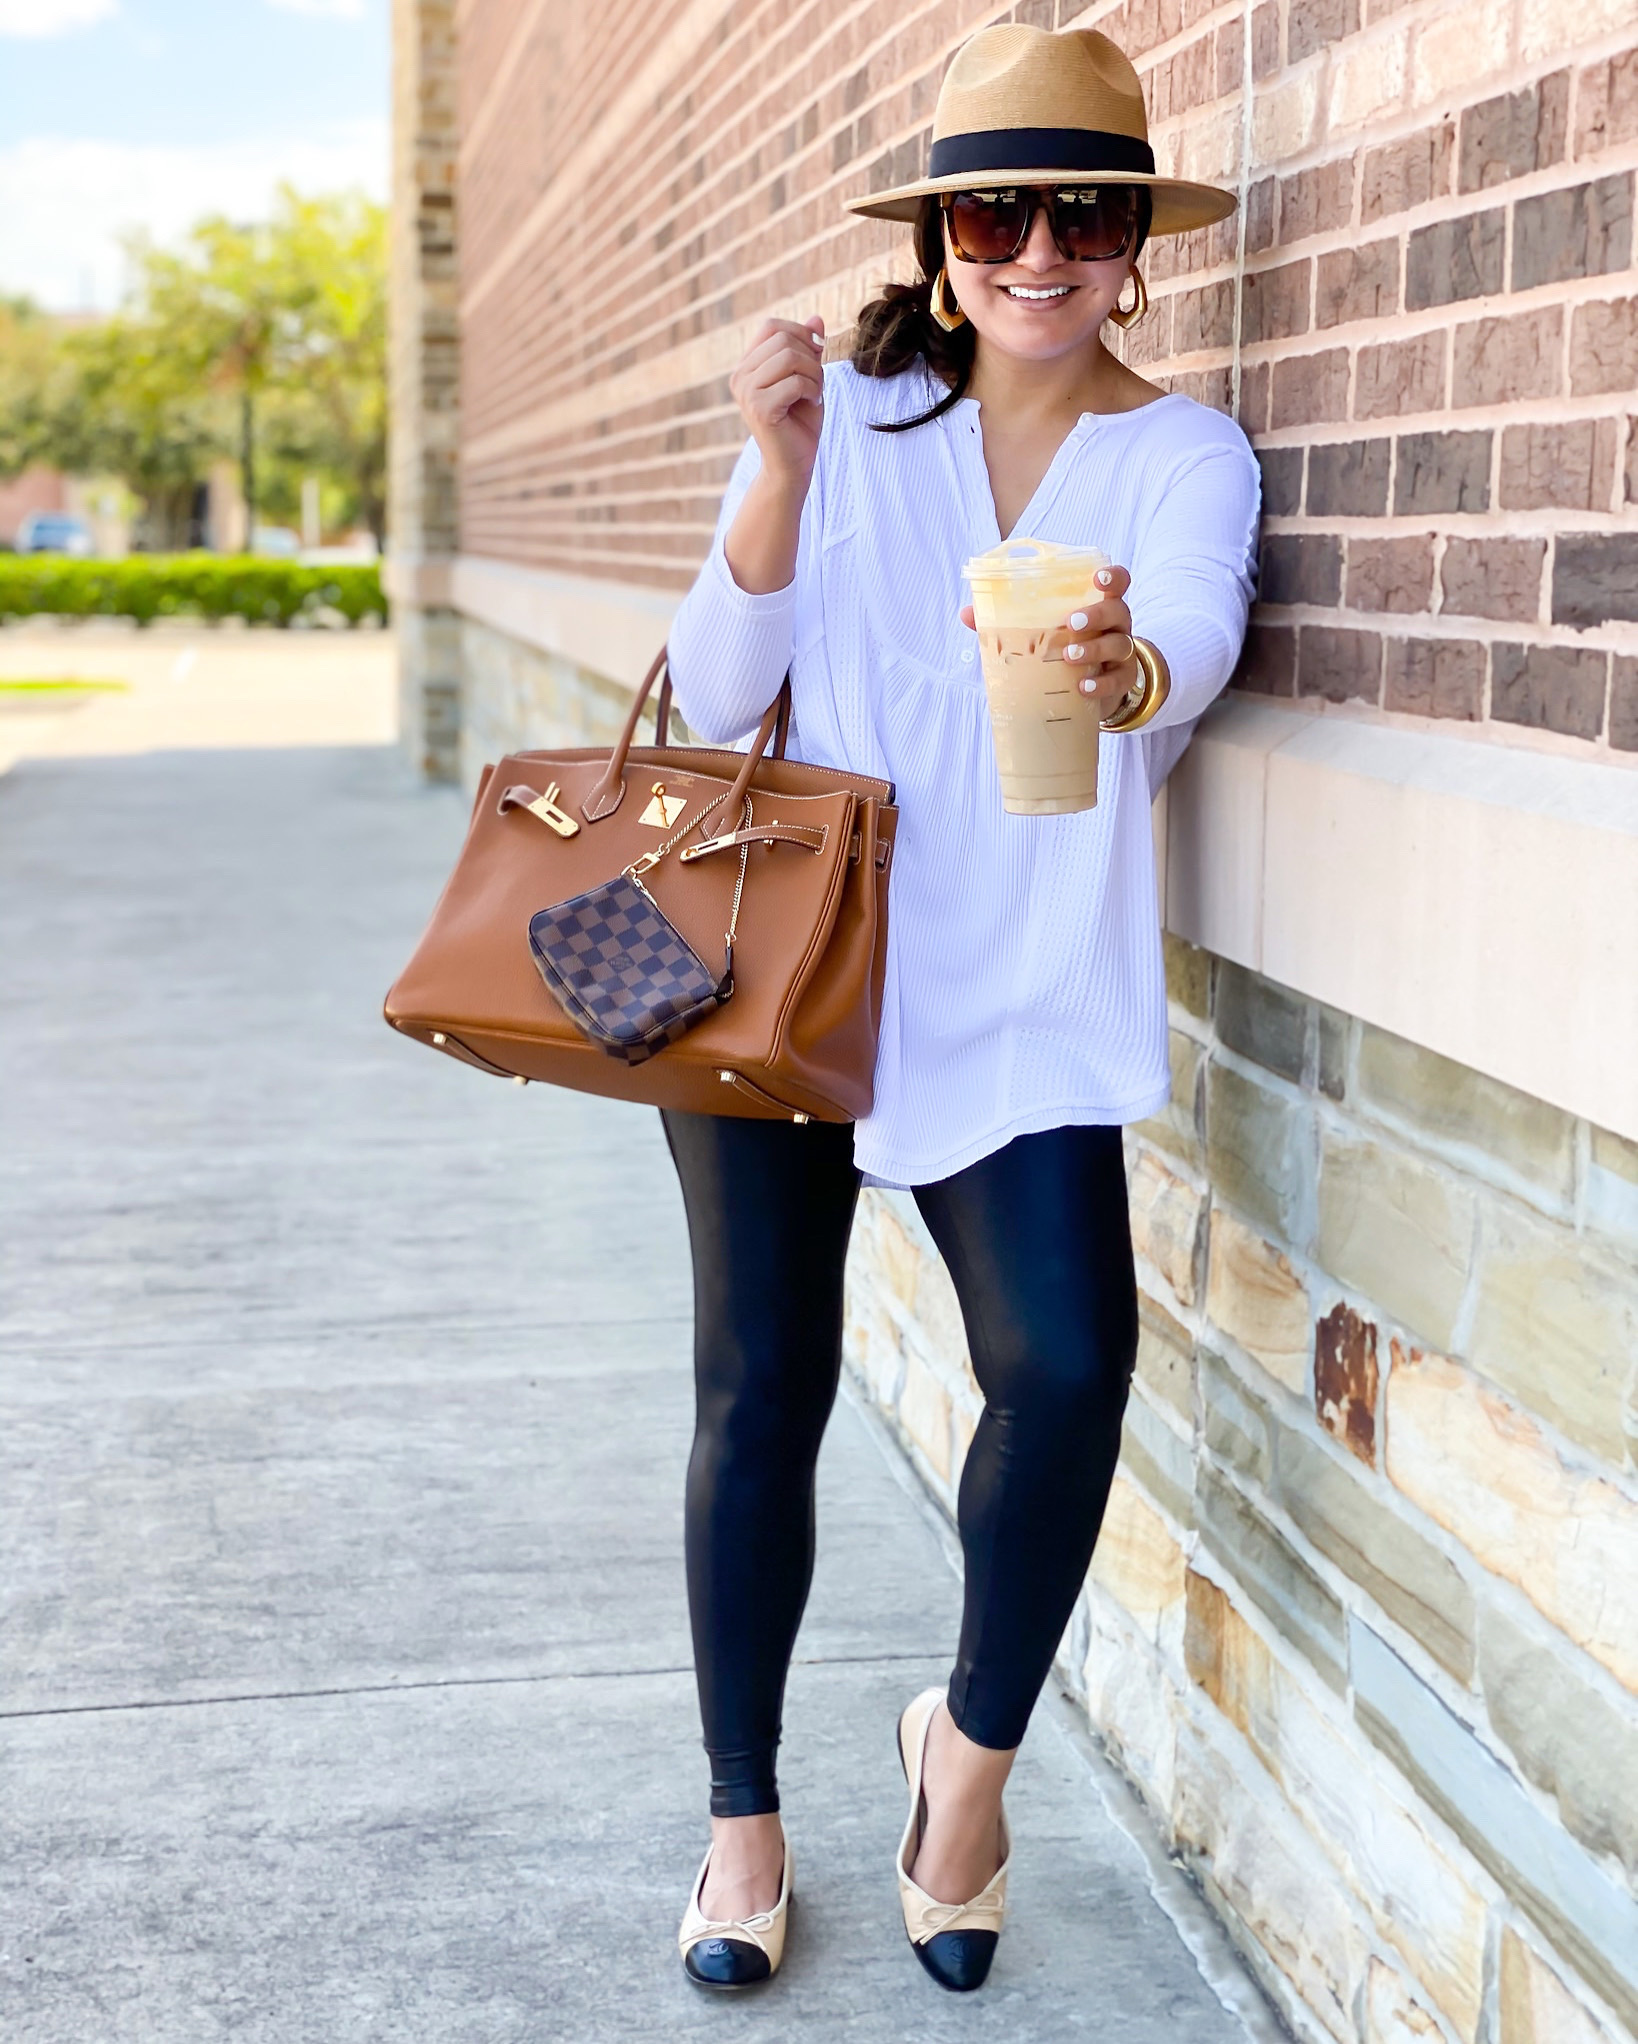 Houston fashion blogger LuxMommy shares her go to Fall starbucks drink order